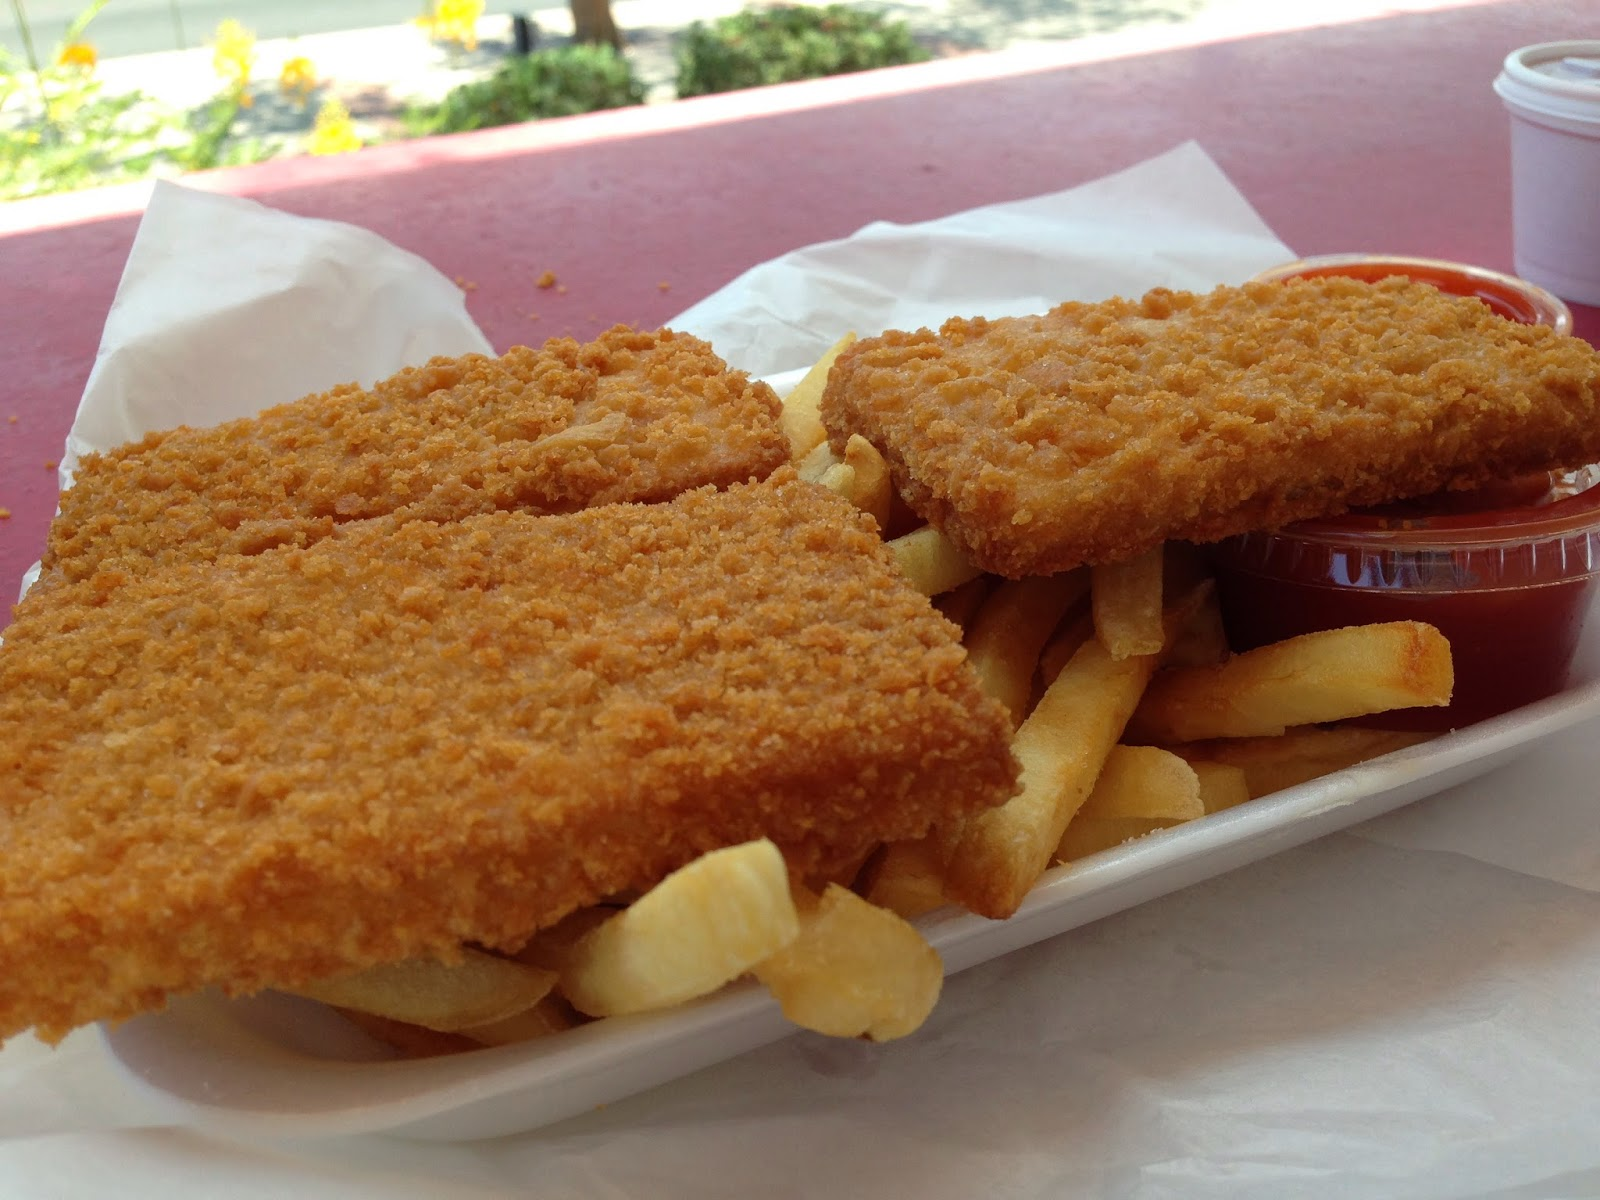 Diamonds in the rough for Petes fish and chips